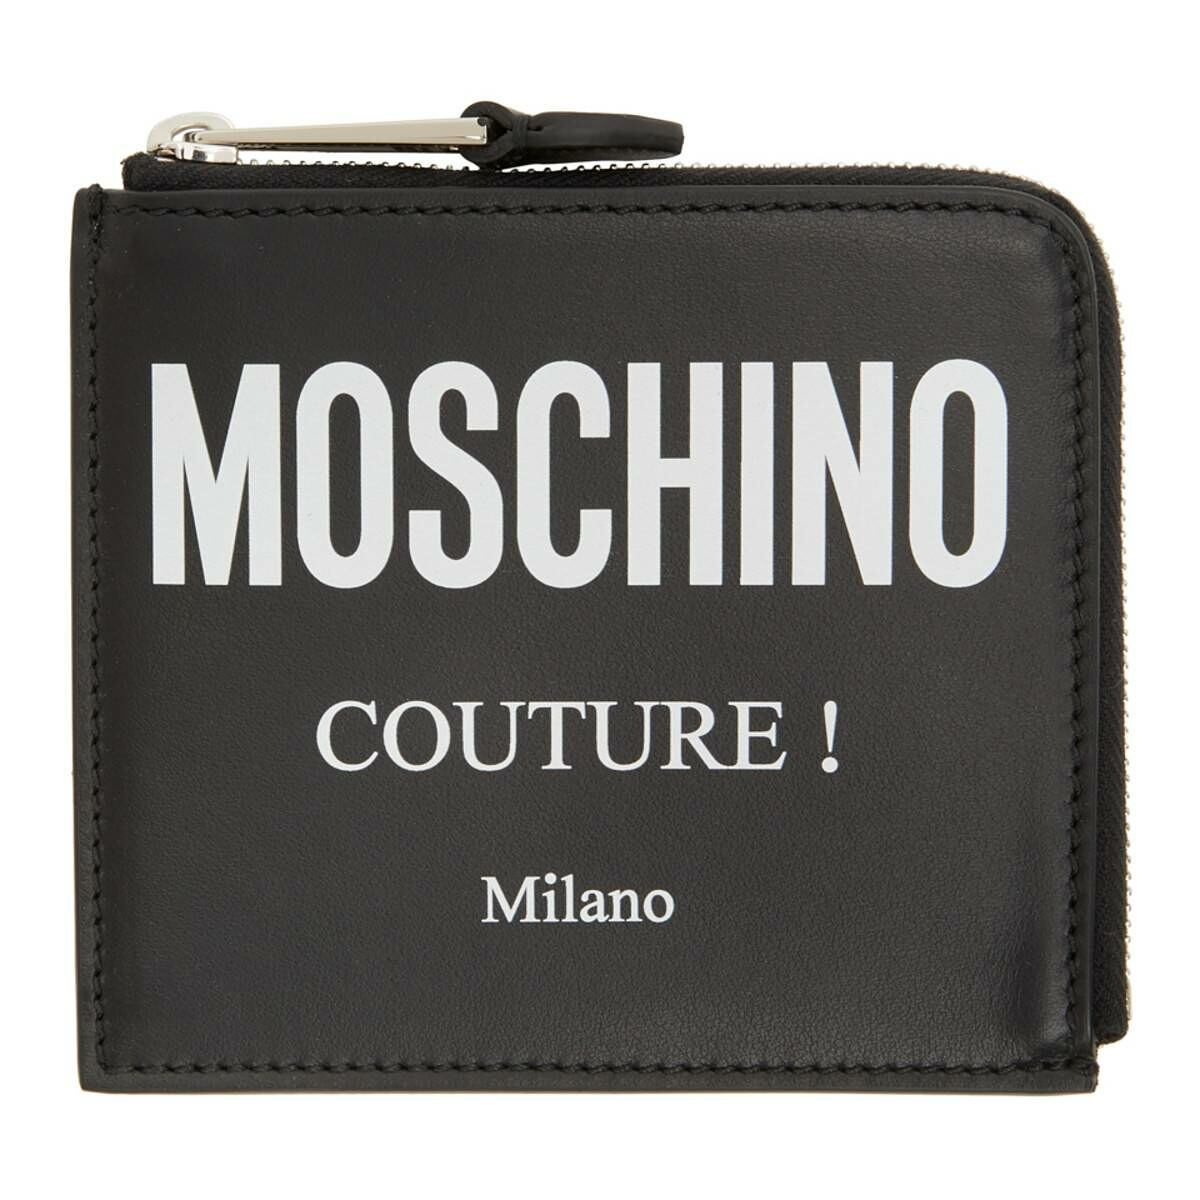 Moschino Black Small Fantasy Print Wallet Ssense USA MEN Men ACCESSORIES Mens WALLETS